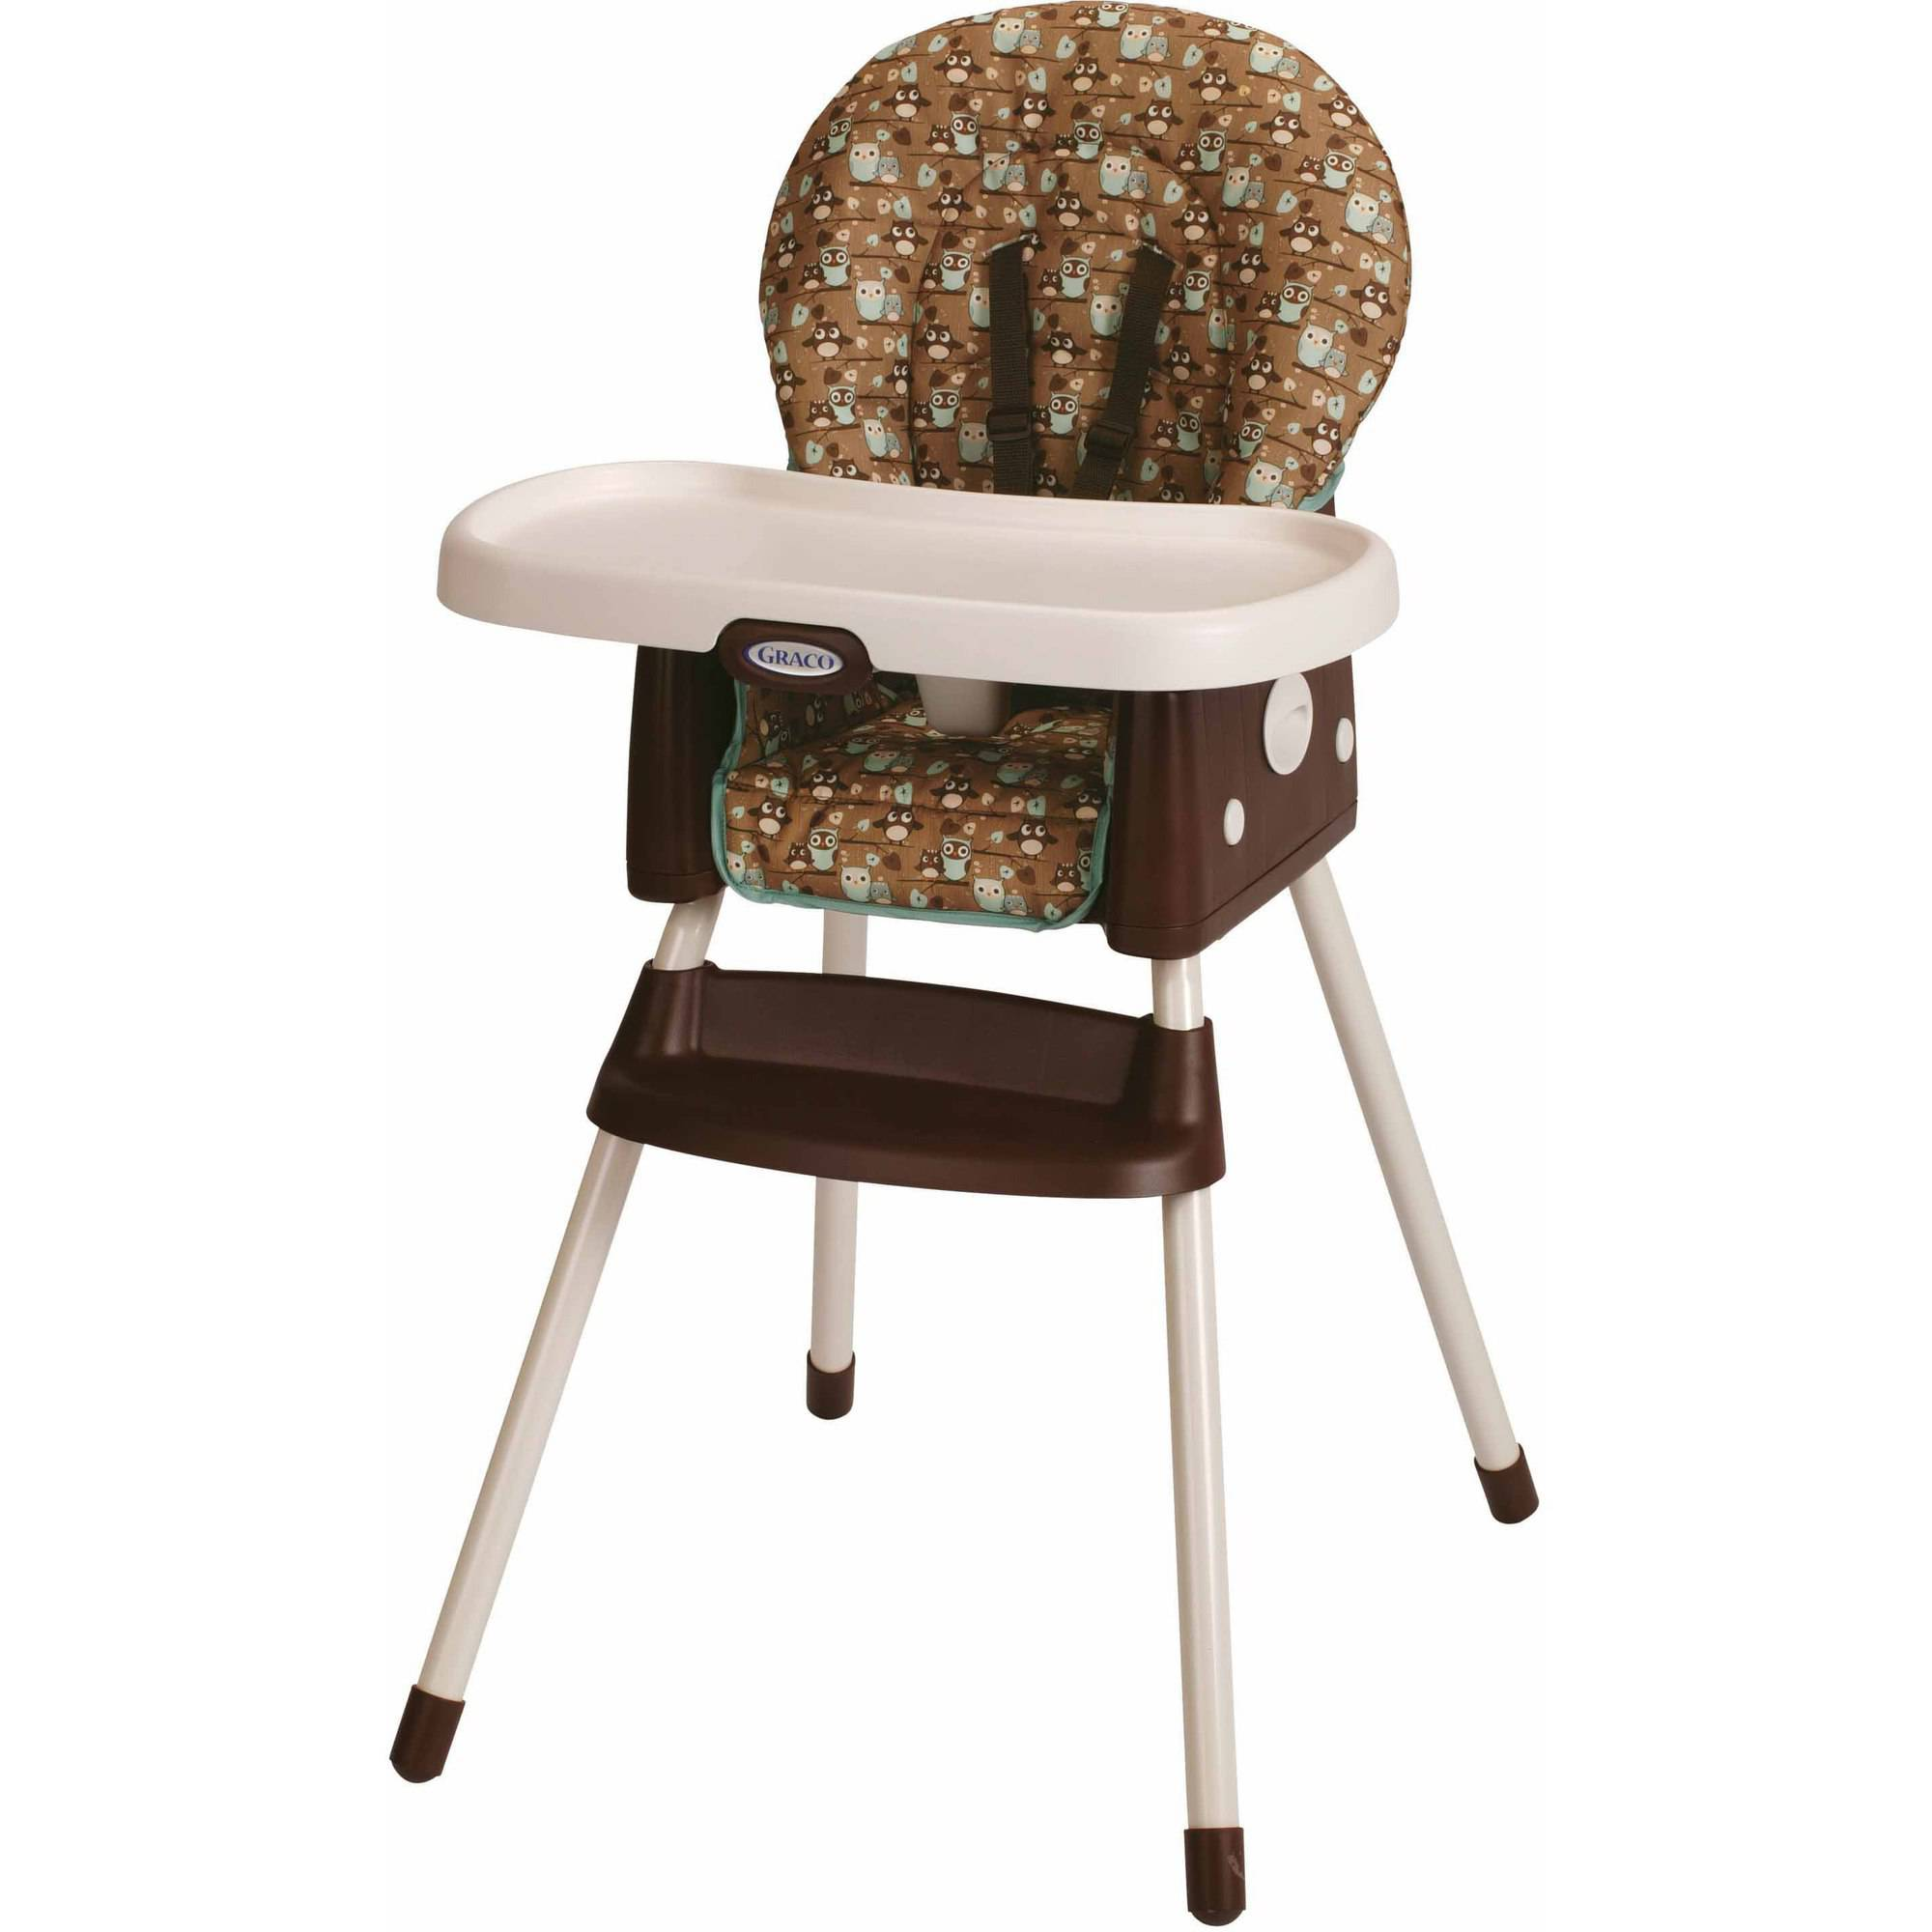 L A Baby Stackable Wood High Chair Walmart